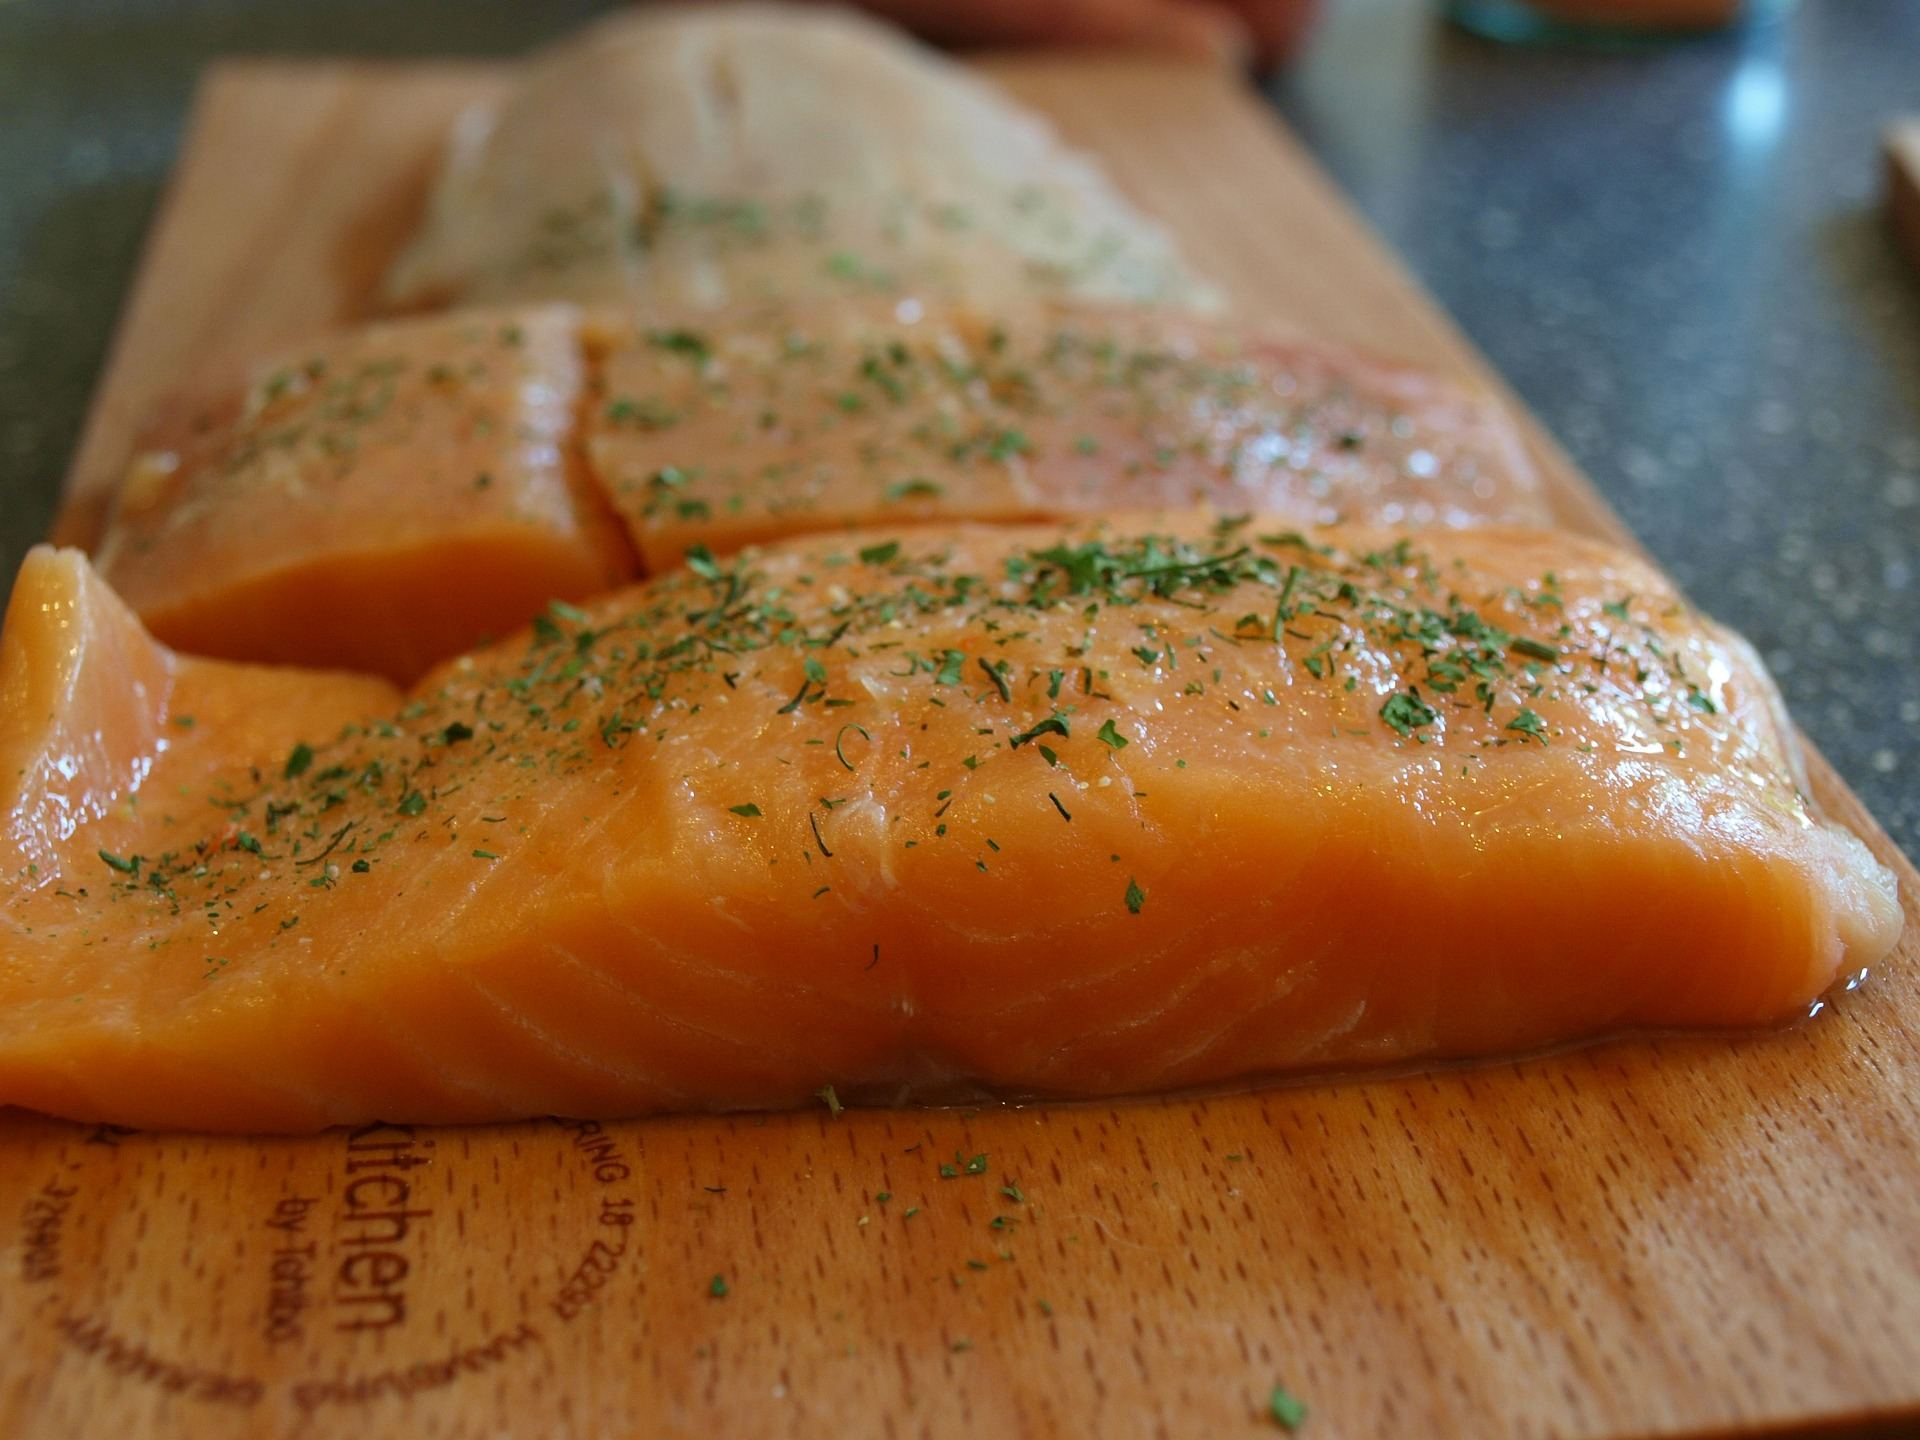 Poaching Is A Great Way To Cook Salmon Fillets And Keep Them Moist While  Flavouring The Fish At The Same Time You Can Poach Fish In Just Water,